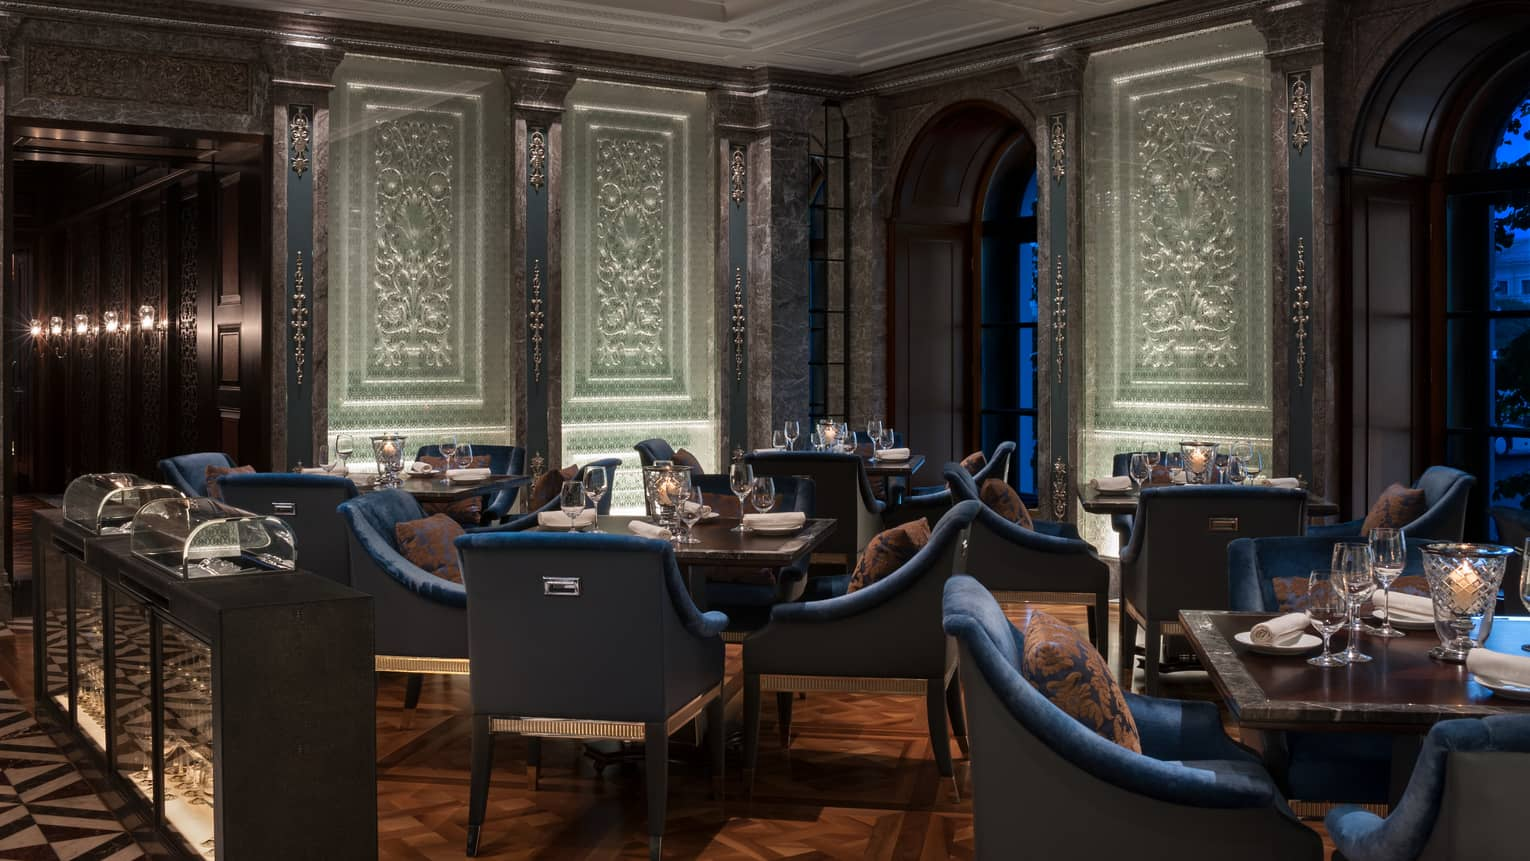 Percorso dining room blue velvet chairs, tables under tall white panels with carved details